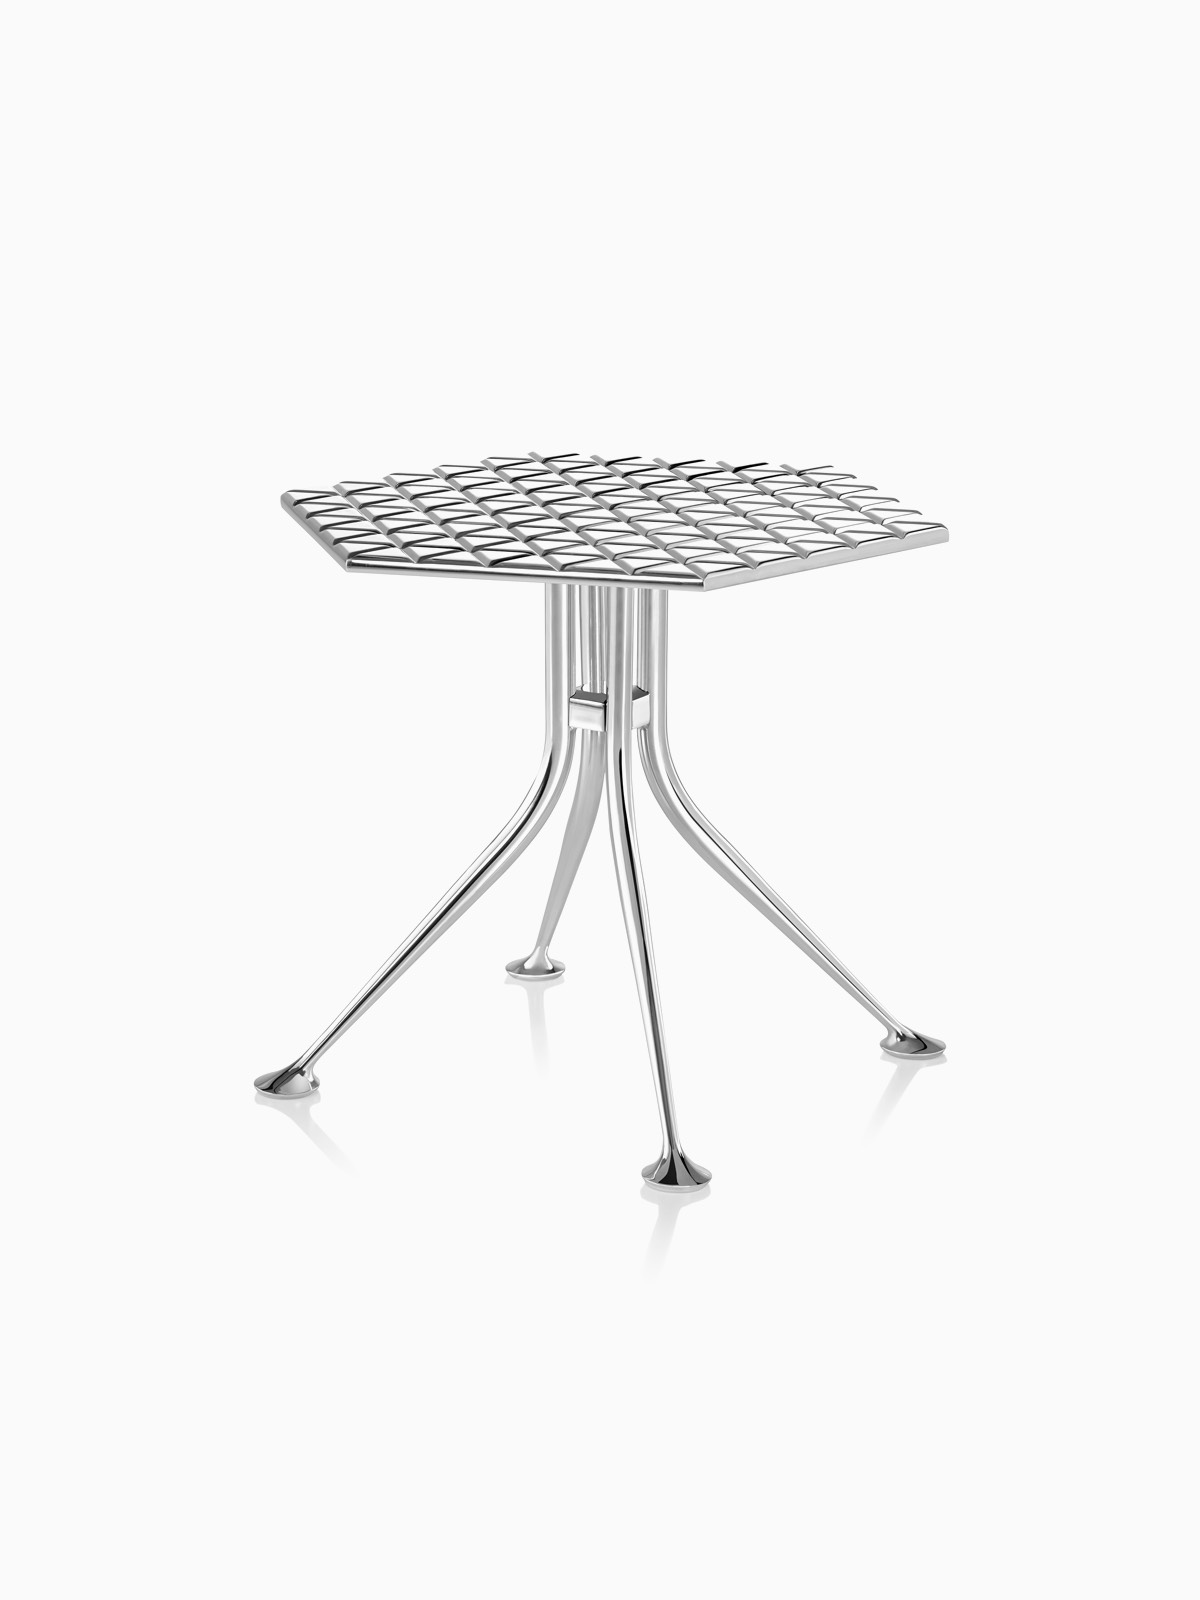 A polished aluminum Girard Hexagonal Table with dozens of triangles inscribed into the top.